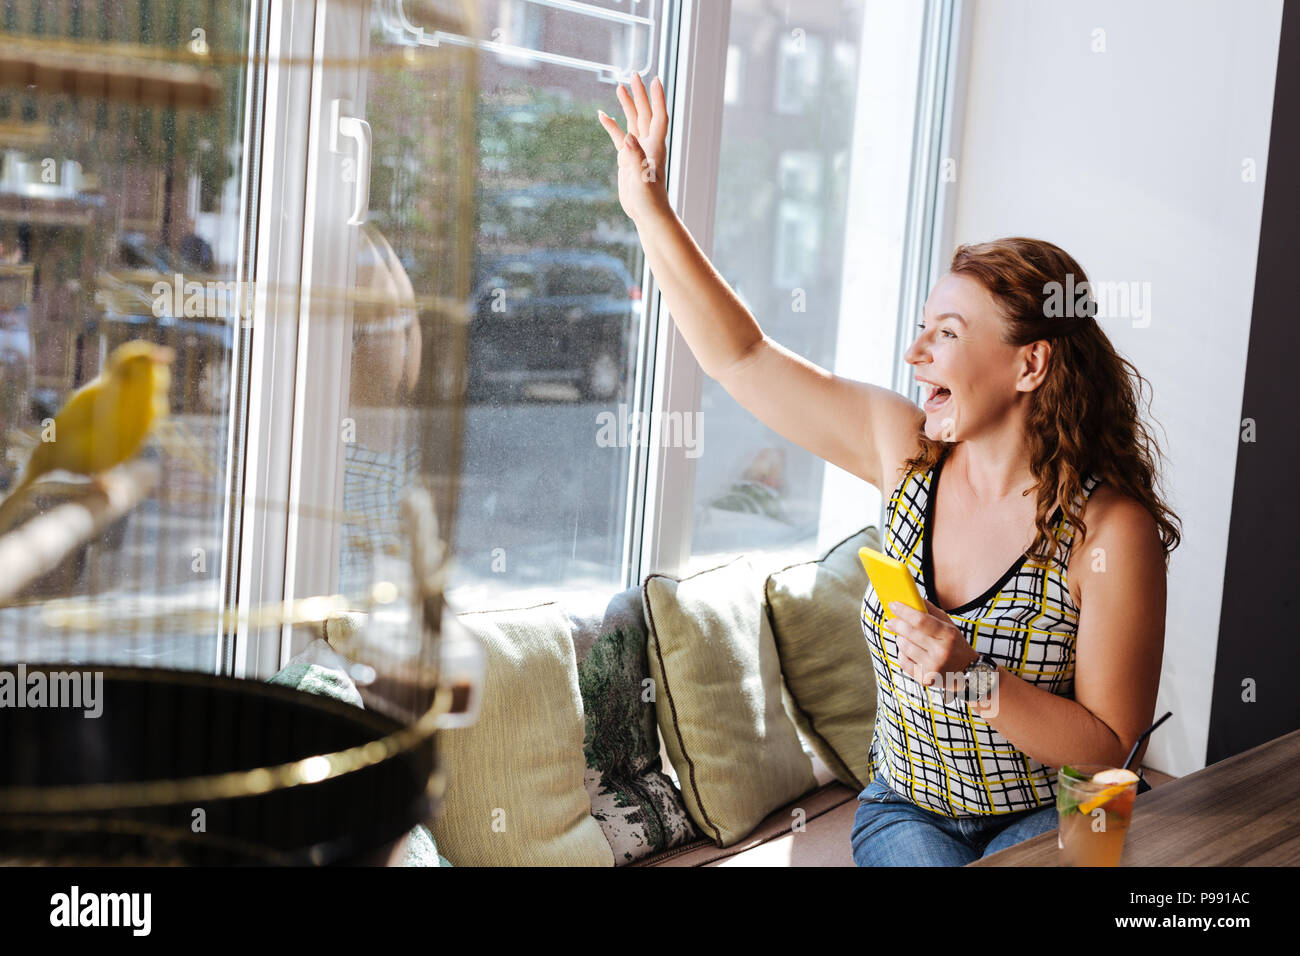 Happy woman seeing her old friend while sitting in cafe - Stock Image